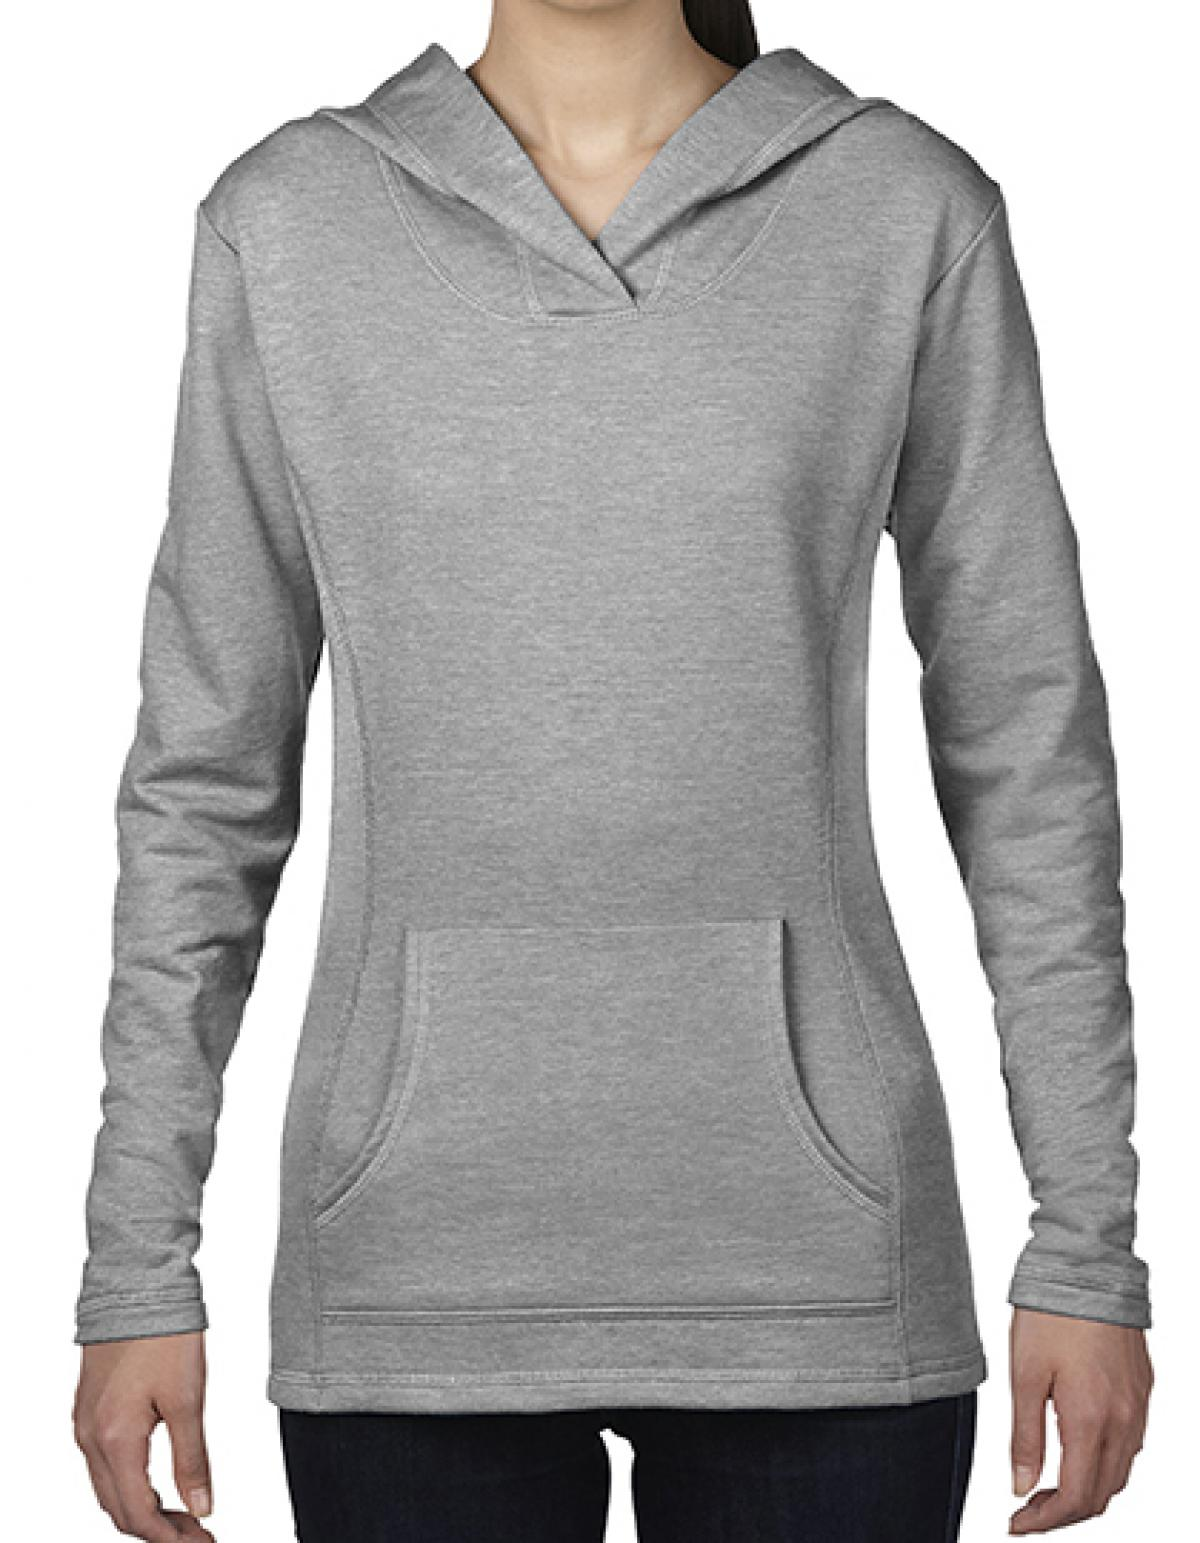 Womens Crossneck Hooded Sweatshirt / Kapuzenpullover ...